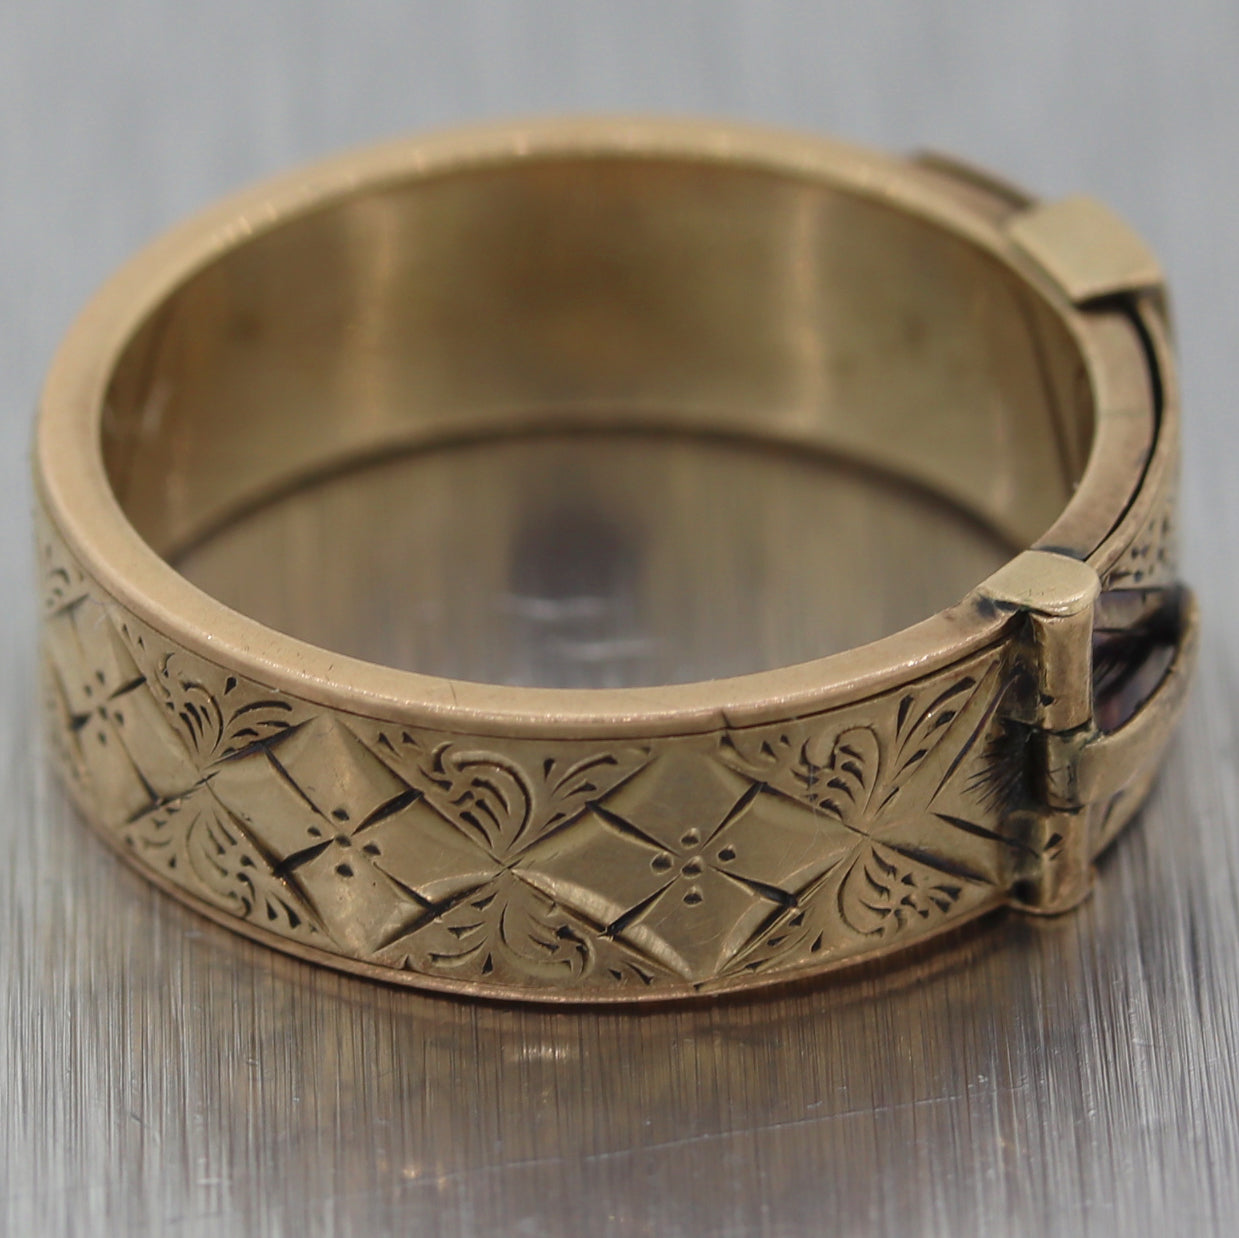 1870's Antique Victorian 14k Yellow Gold Buckle Wedding Band Ring